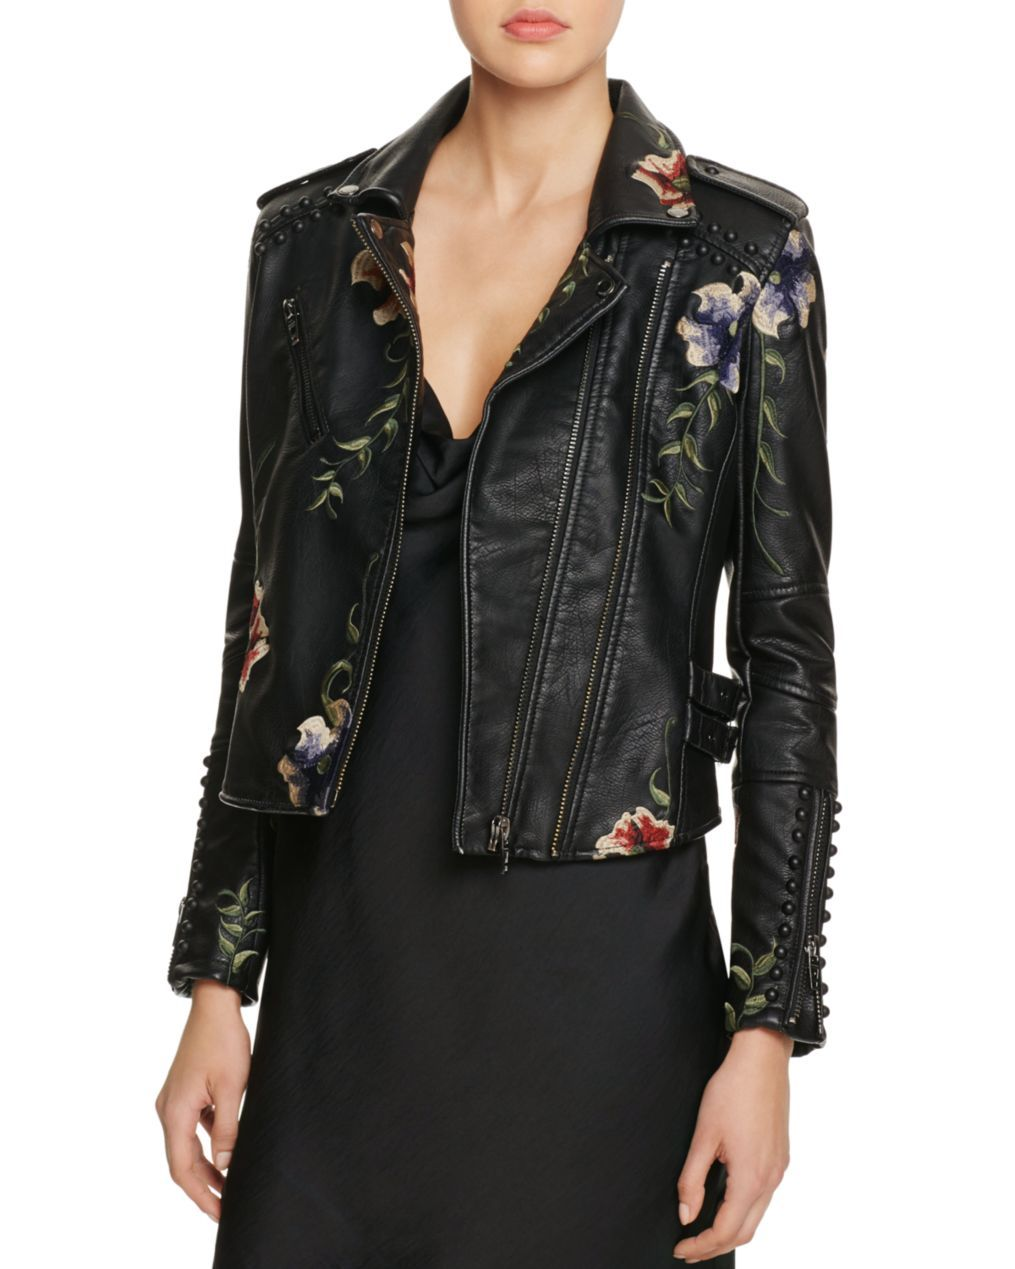 BLANKNYC Studded Embroidered Faux Leather Motorcycle Jacket - 100%  Bloomingdale's Exclusive